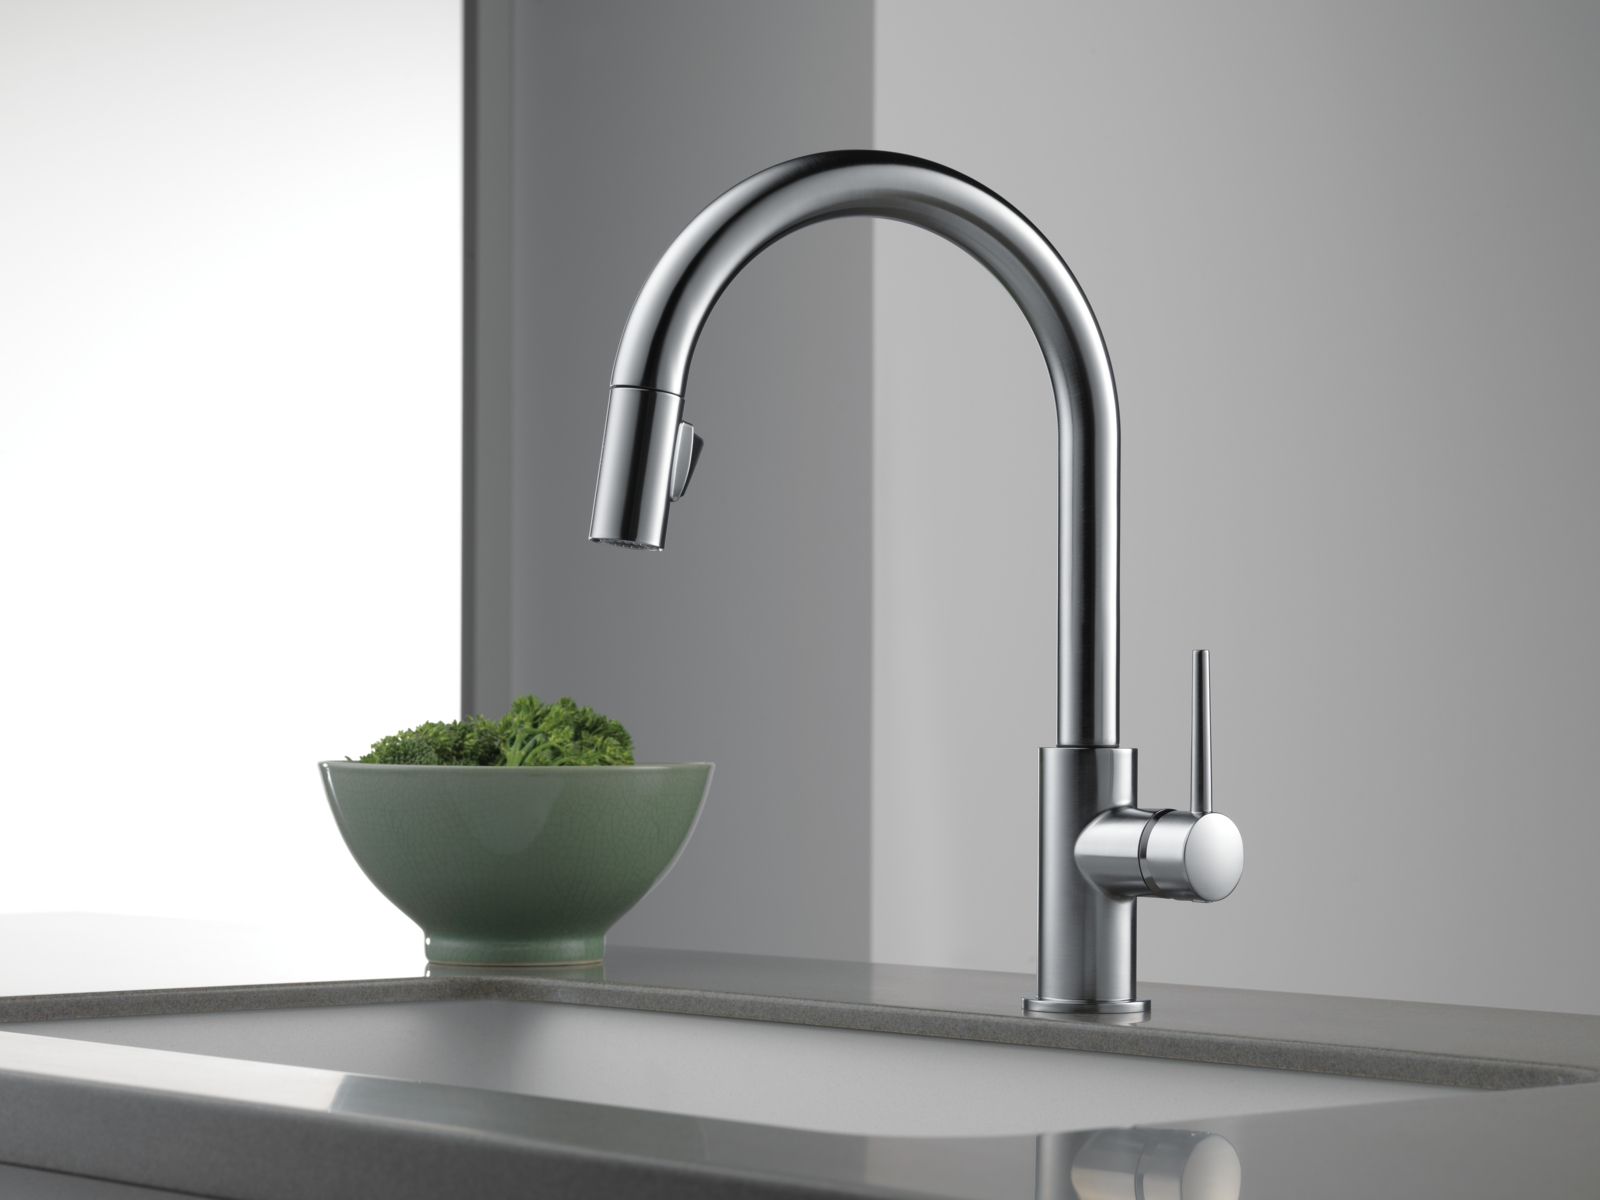 Ideas, delta touch sink faucet delta touch sink faucet trinsic kitchen collection kitchen faucets pot fillers and 1600 x 1200  .